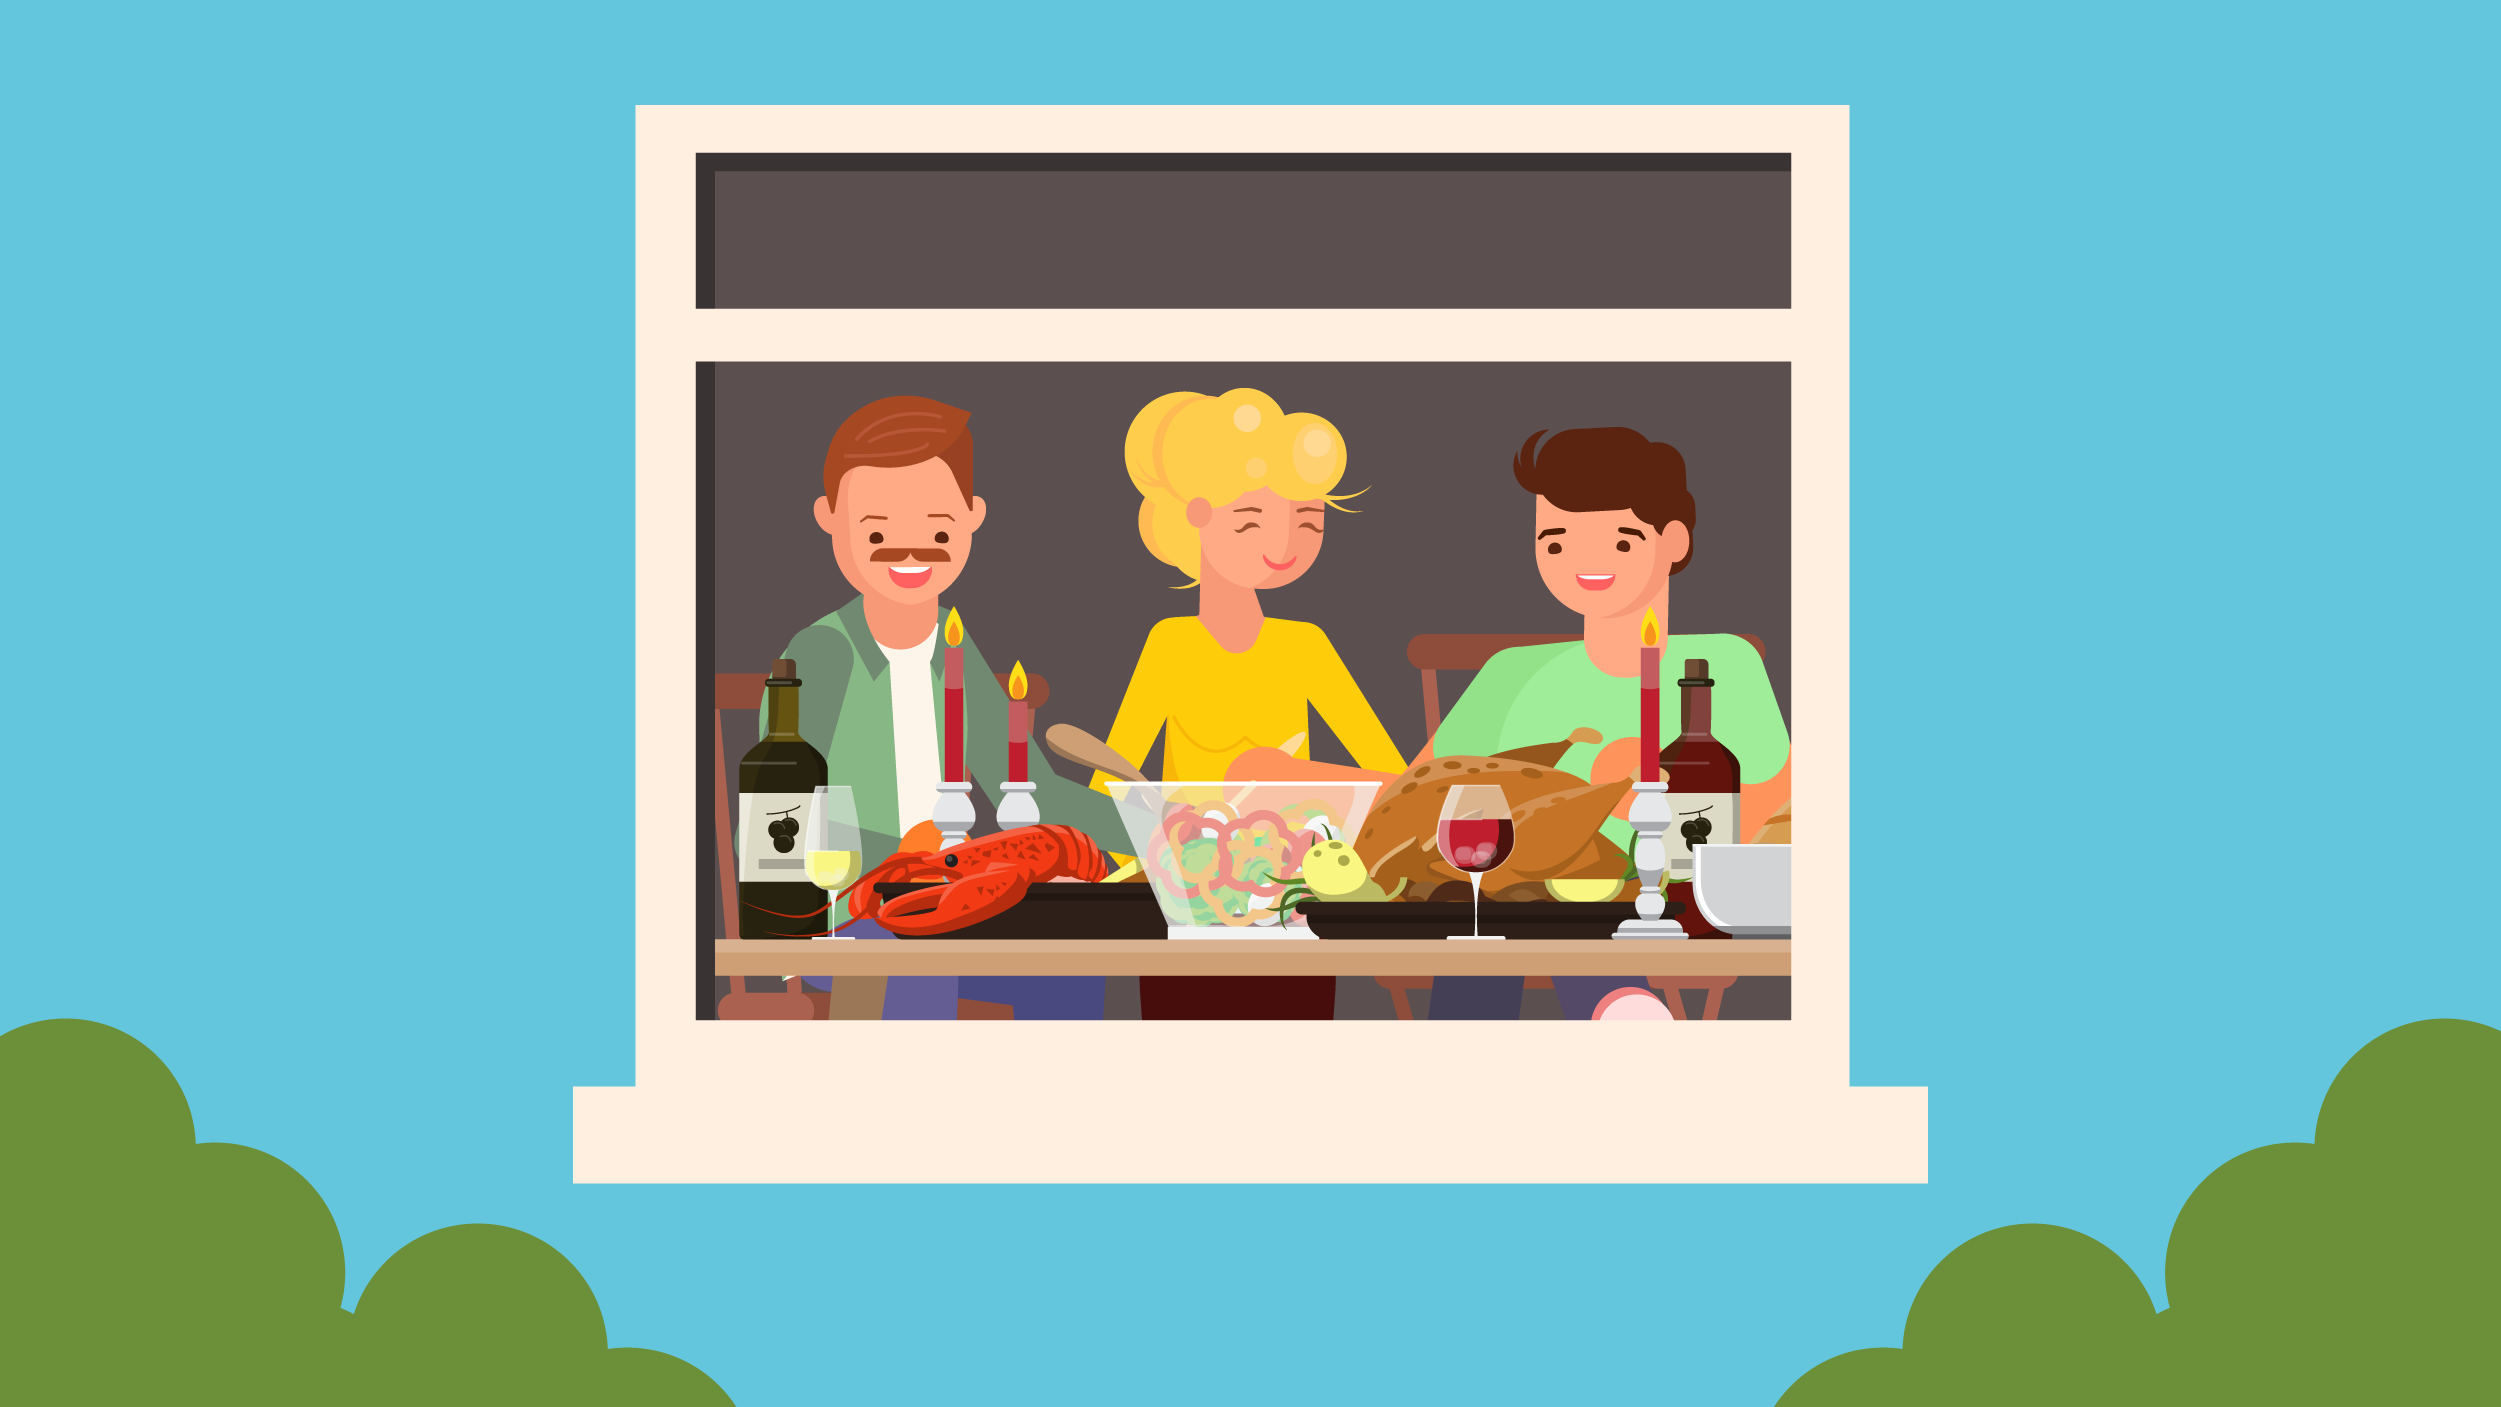 Illustration of family enjoying quality conversations over a home-cooked dinner.